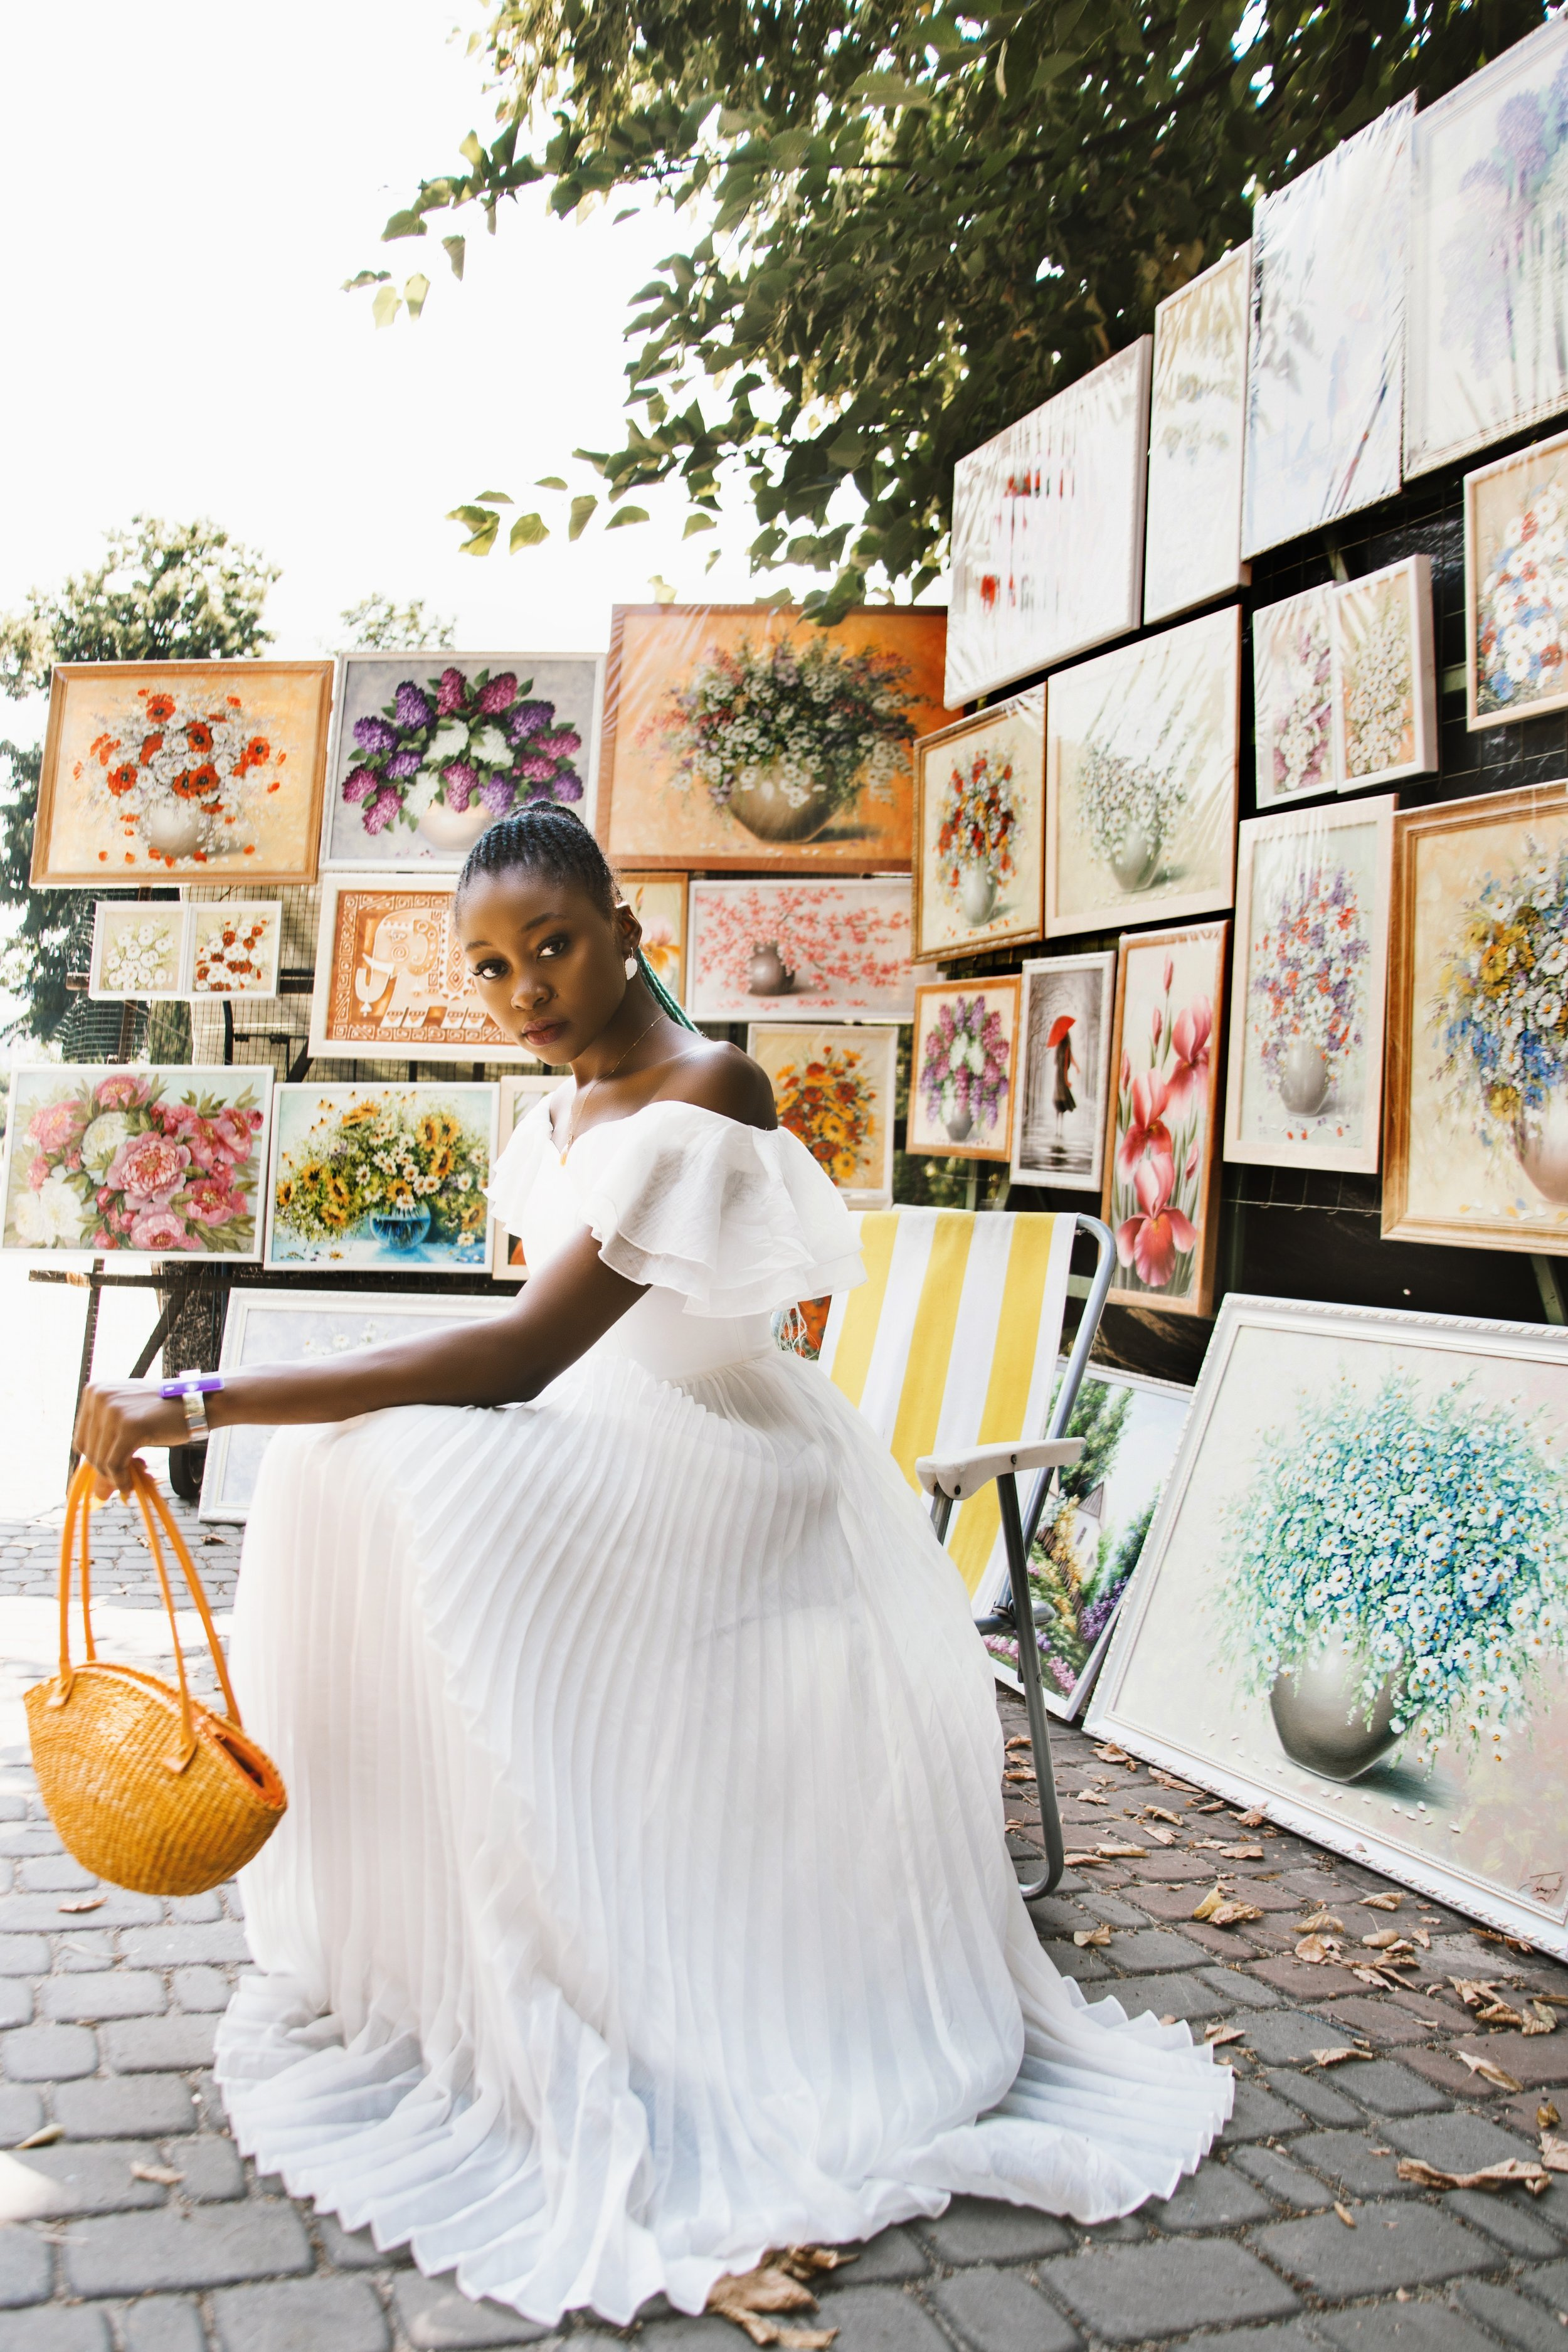 A beautiful woman in a white pleated gown holding a gold toned wicker purse sits in front of a street art exhibit